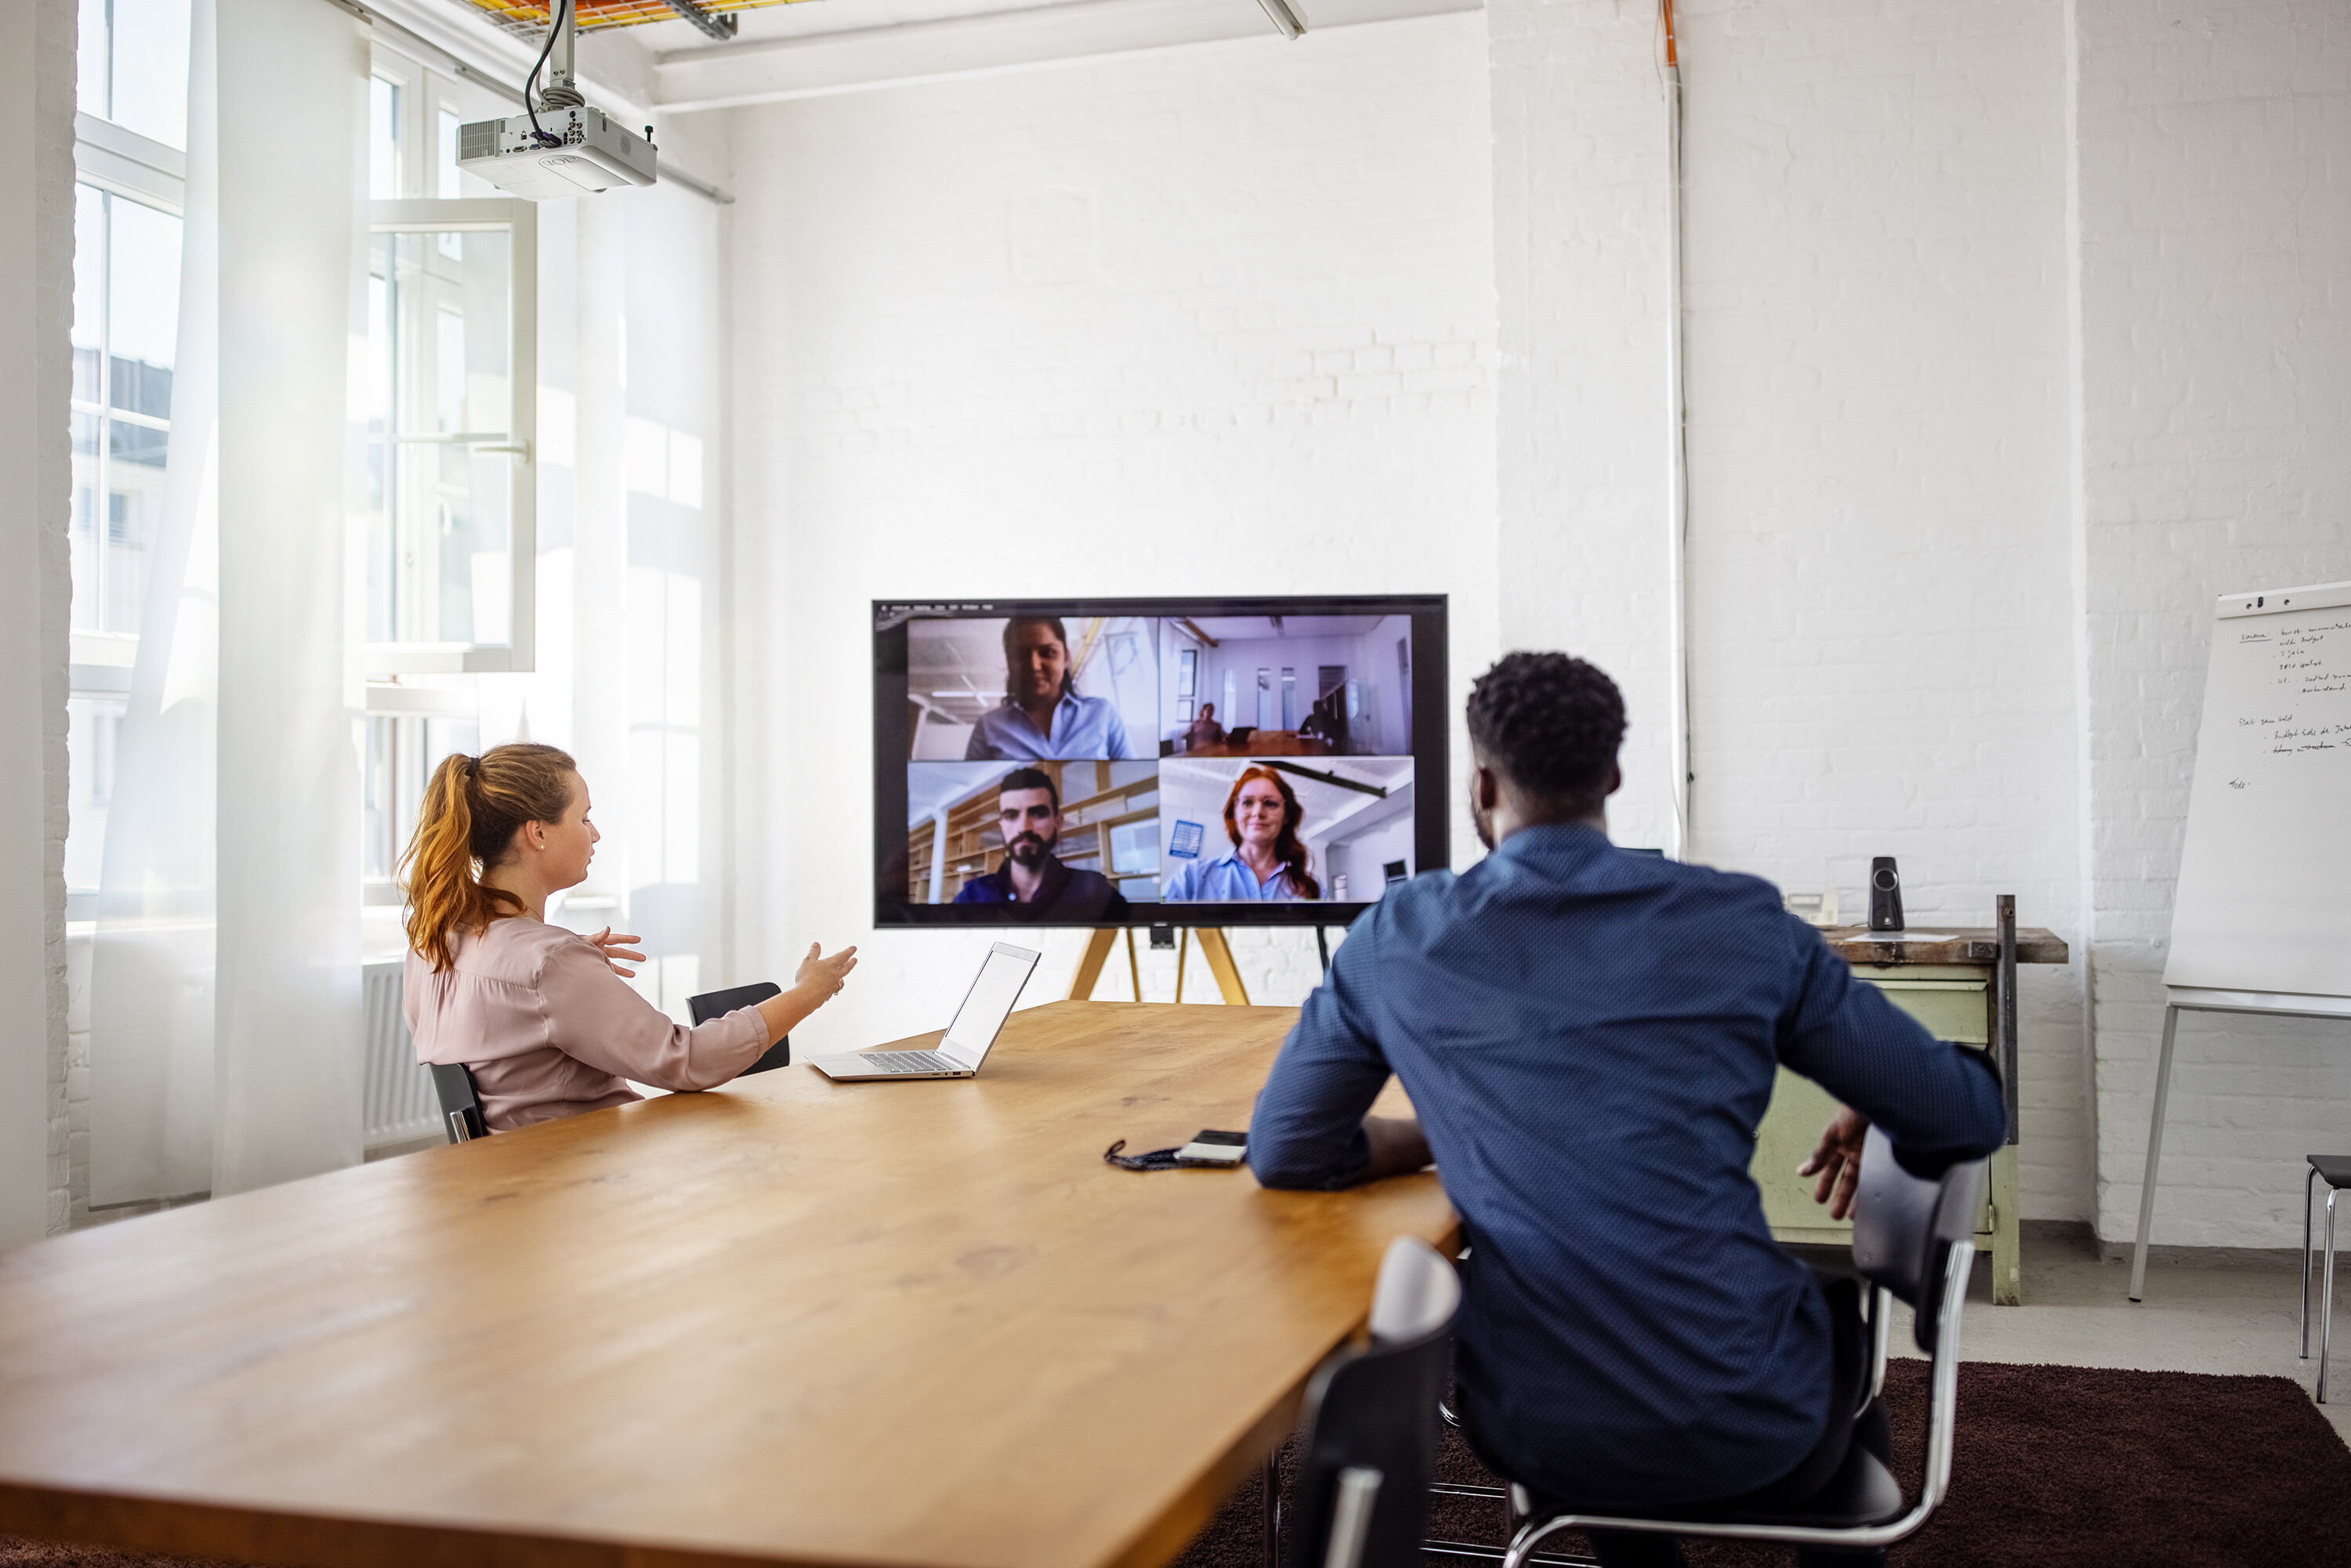 Think remote meetings are hard? Hybrid meetings are much more complicated